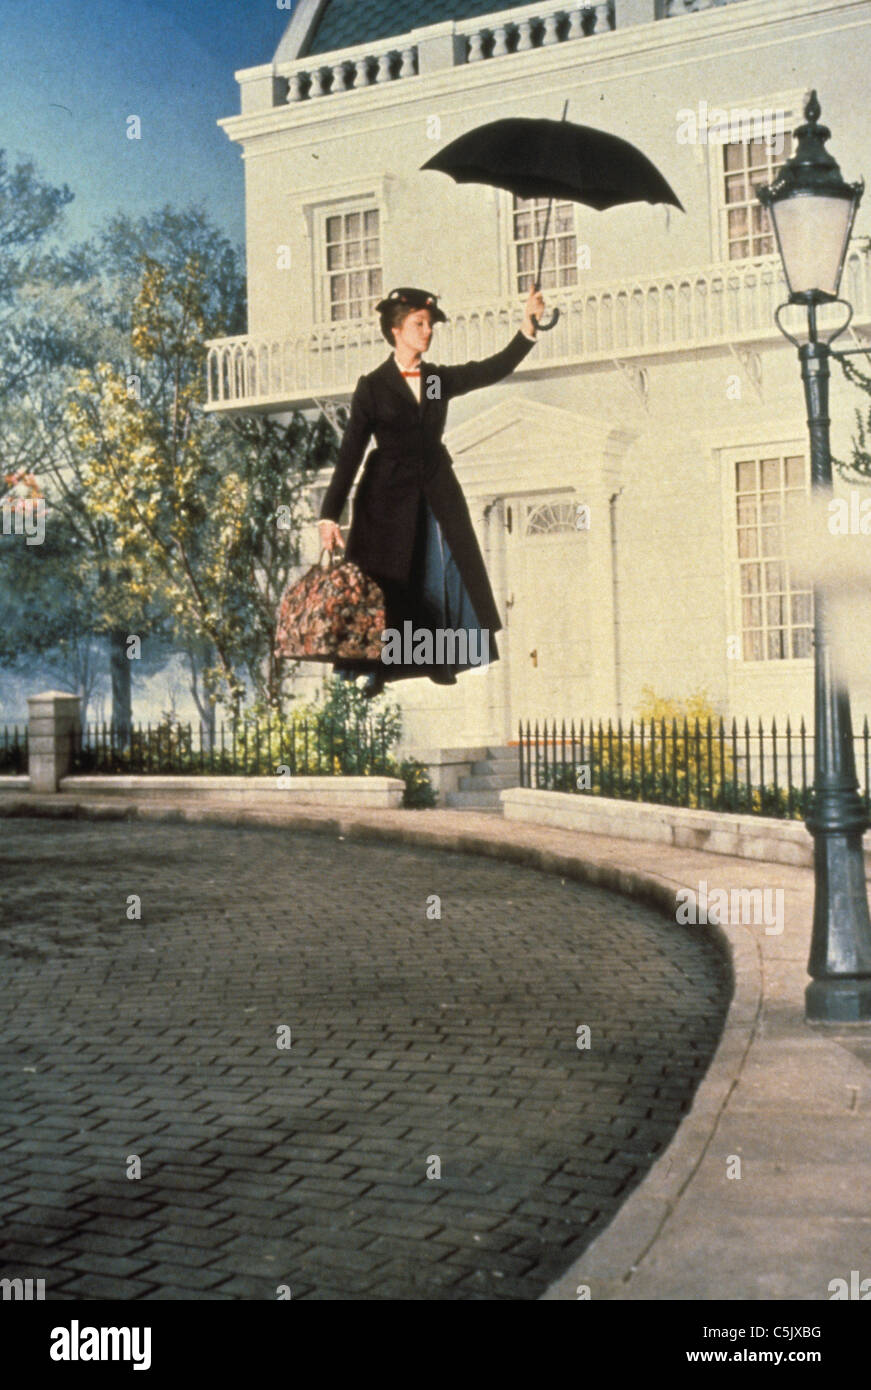 julie andrews in mary poppins,1964 - Stock Image